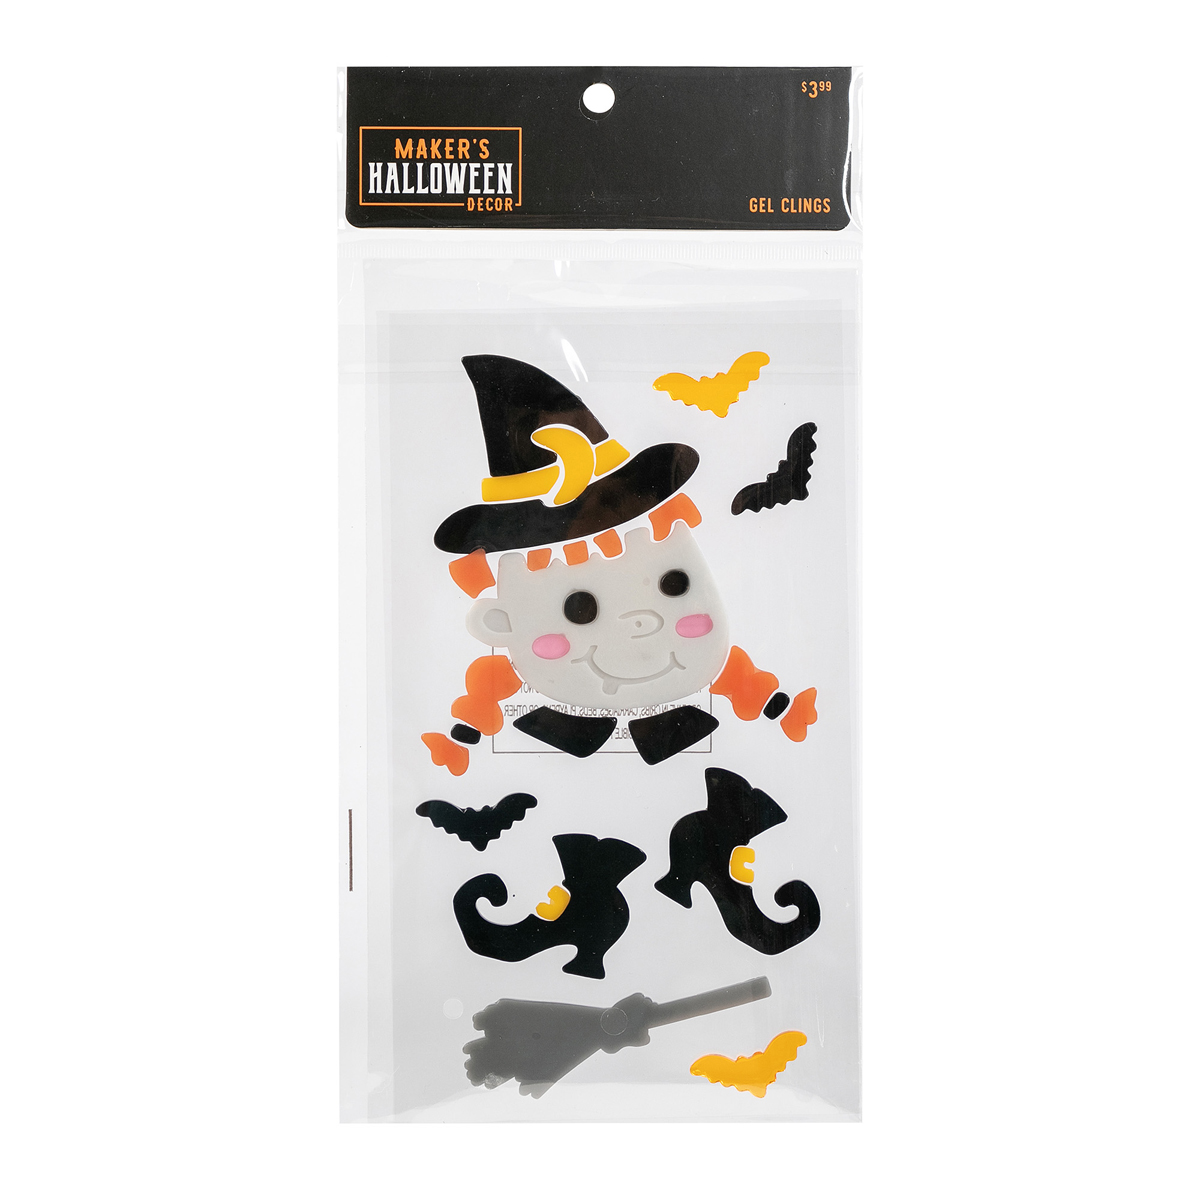 Maker\u0027s Halloween Decor 5.91\u0027\u0027x9.84\u0027\u0027 Gel Clings-Witch